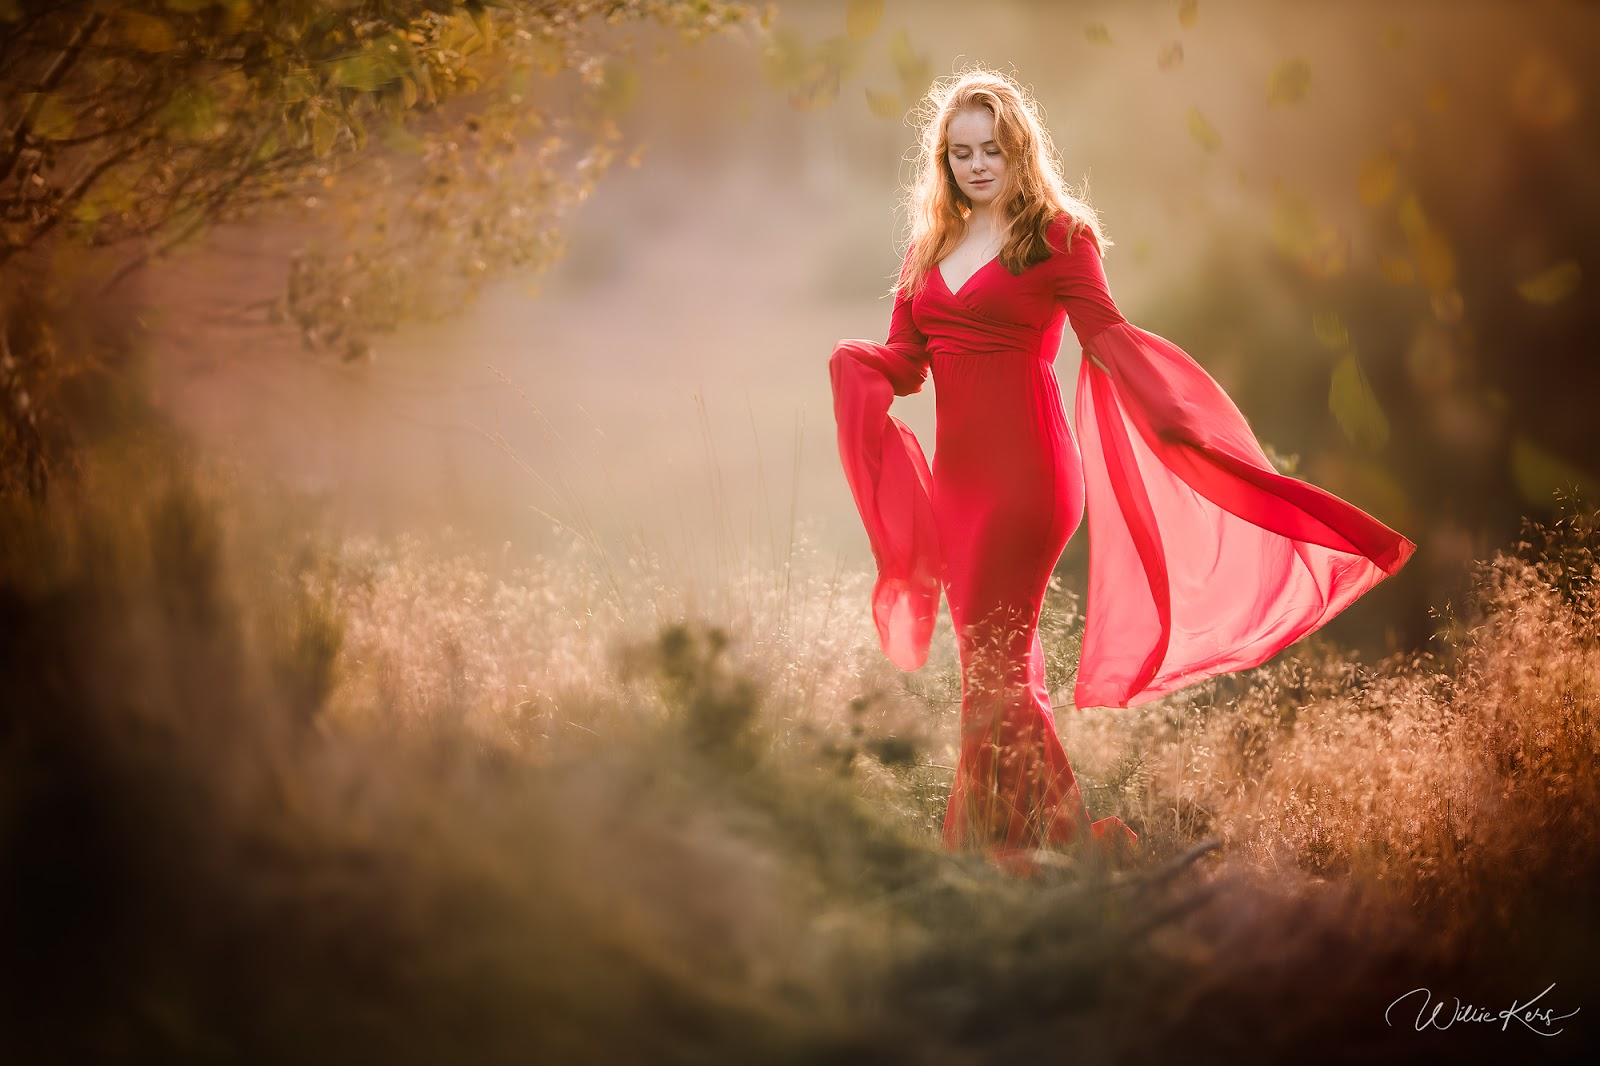 Canon Fine art portrait of Dutch photographer Willie Kers of a young red headed woman in a red wedding dress standing in the field during sunset in  Apeldoorn